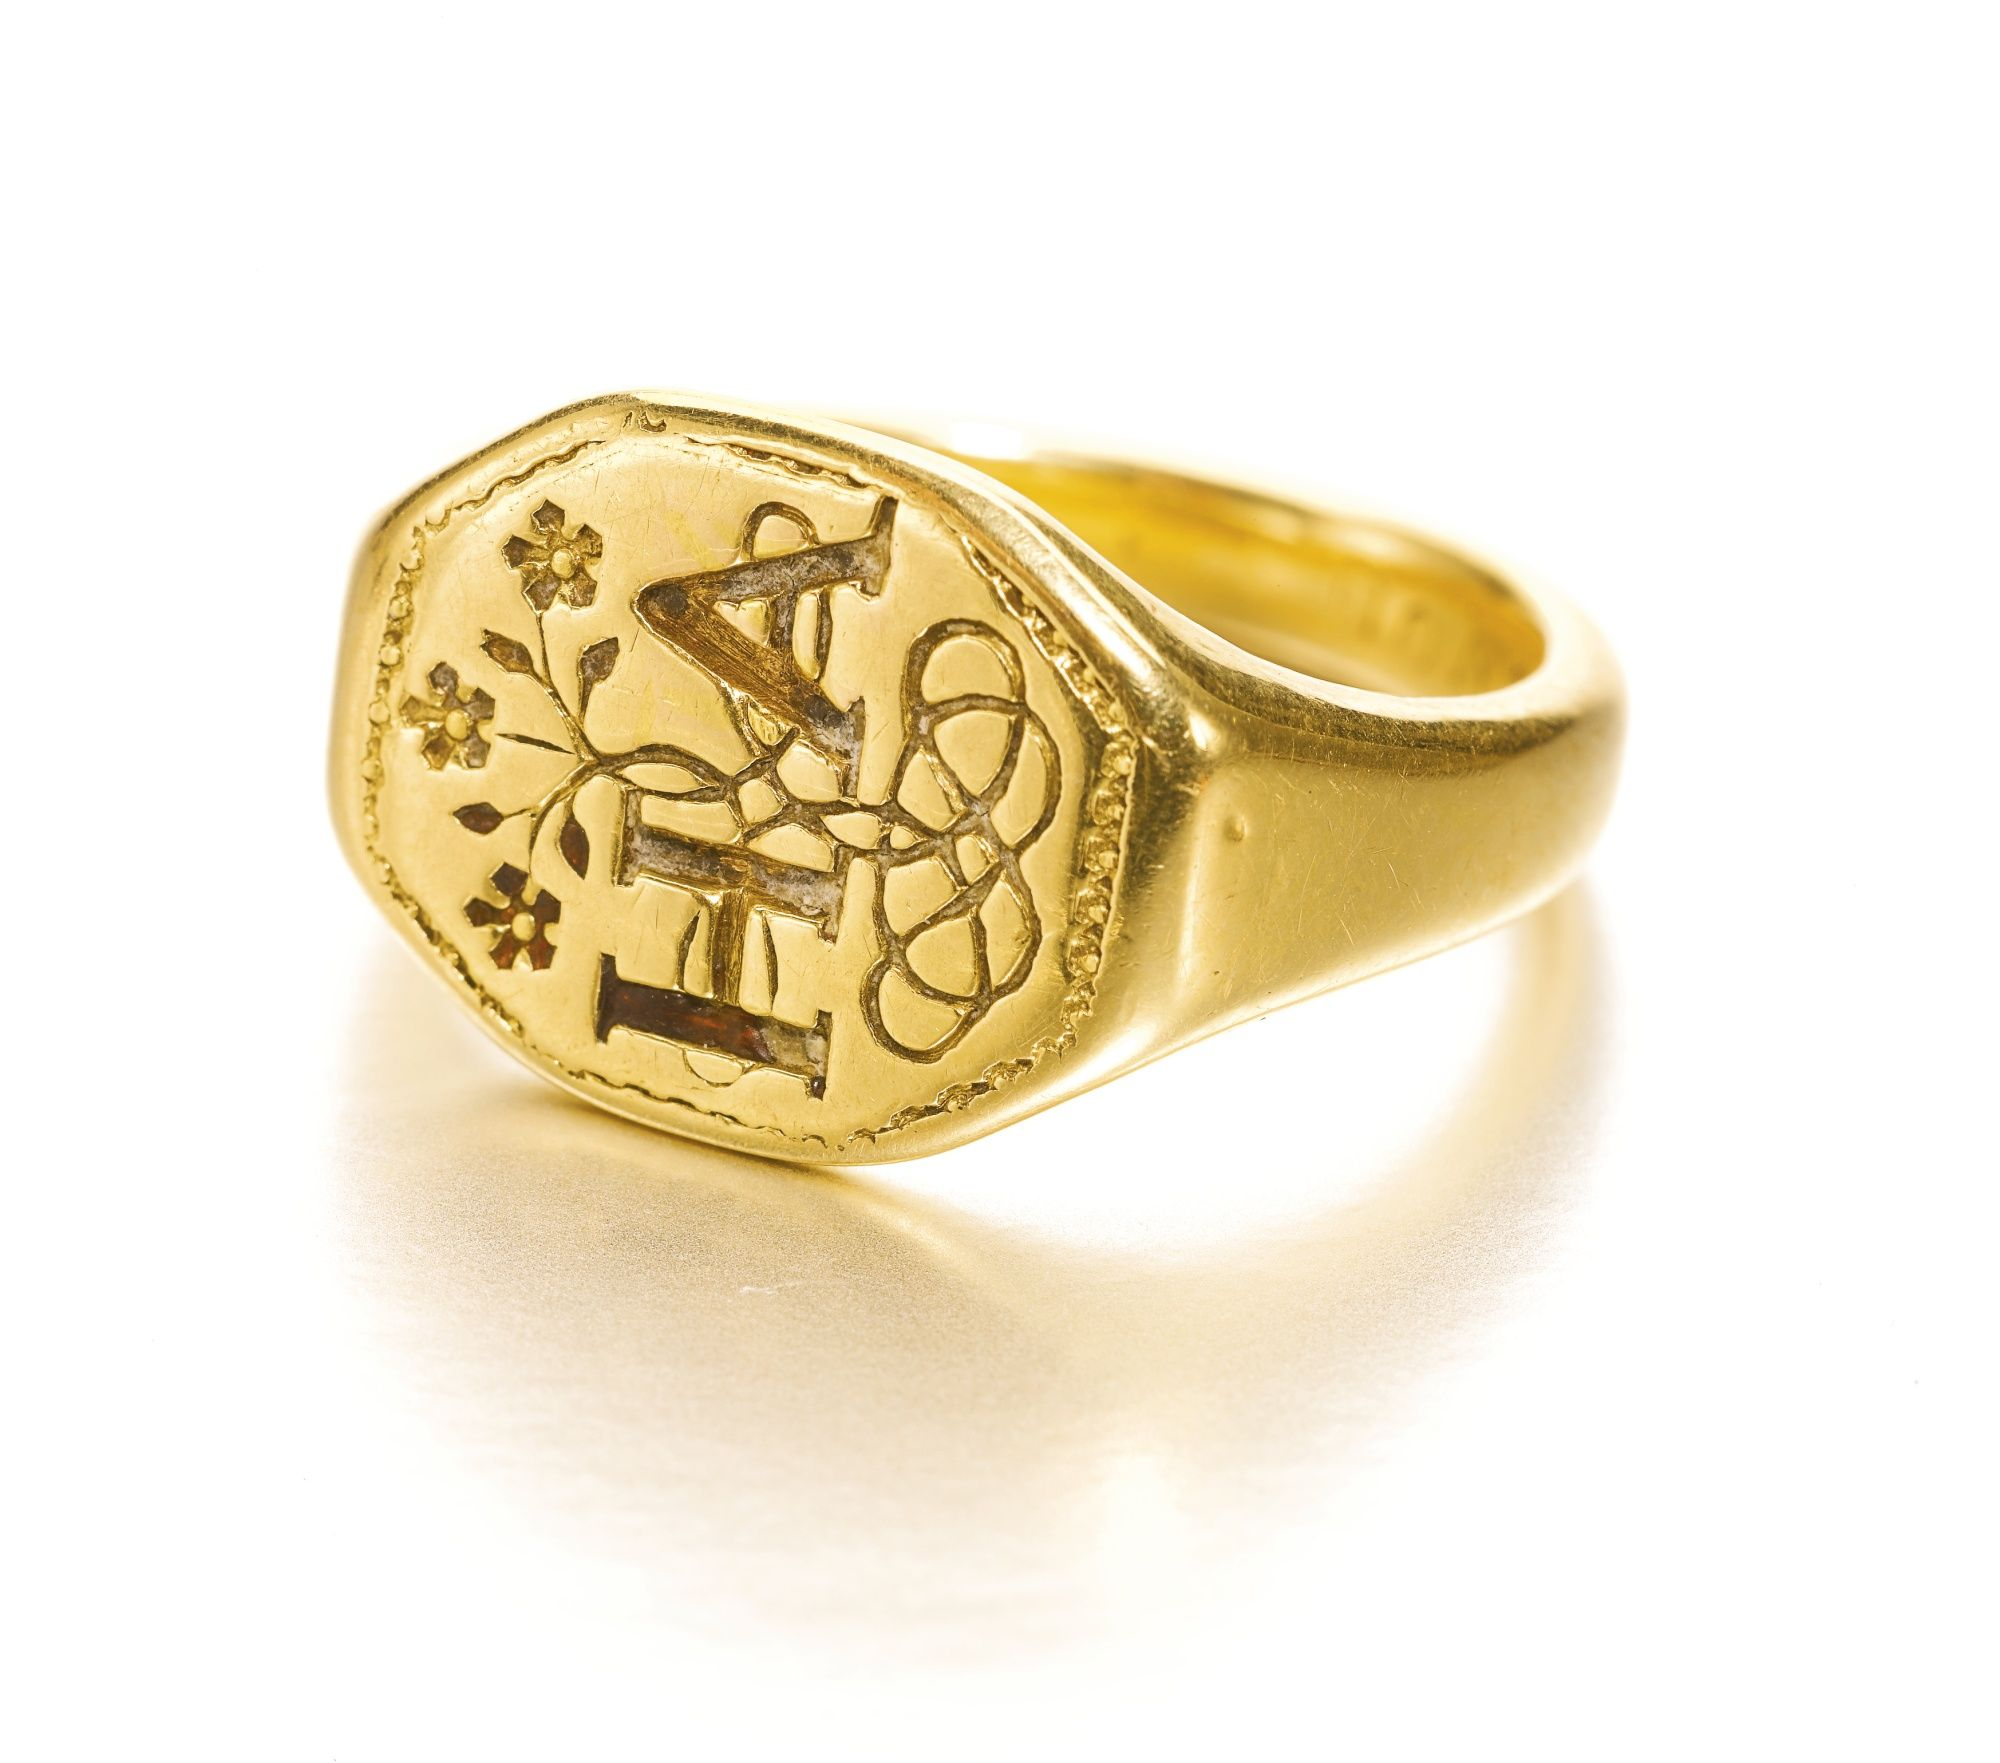 English Gold Ring With A Posey Circa 1600 When This You See Remember Me: Intertwining Ring Renaissance Wedding At Websimilar.org